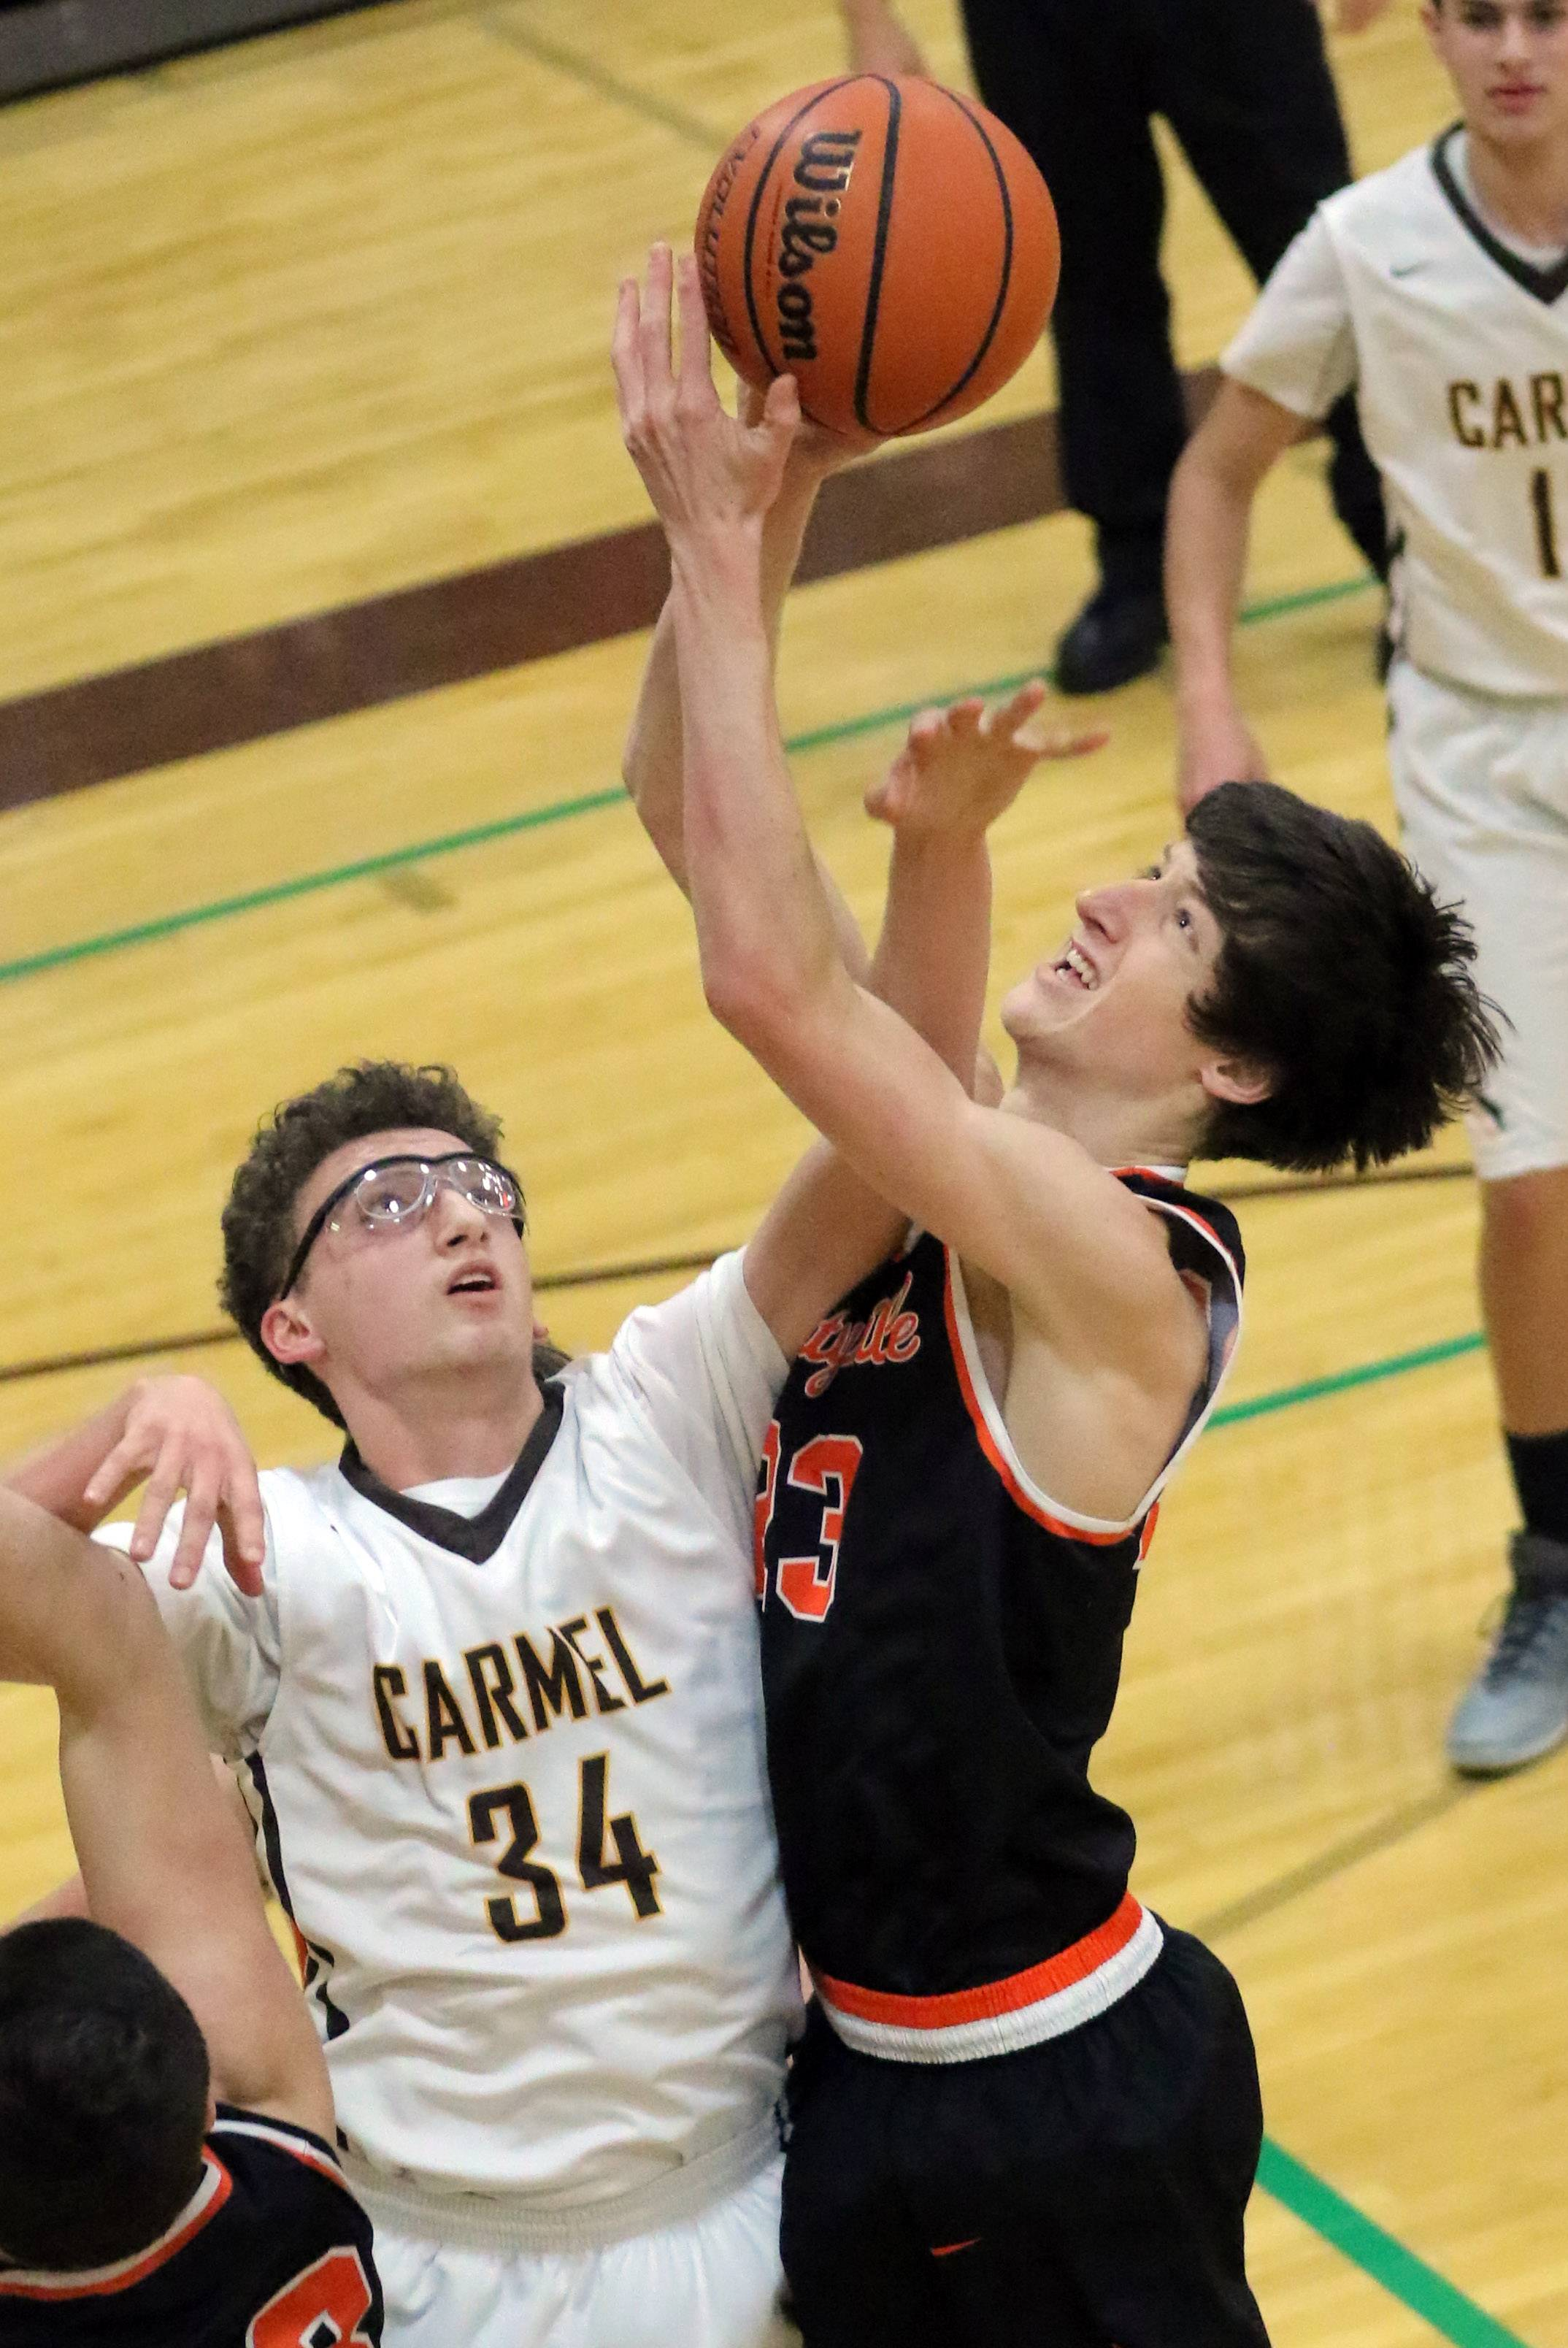 Carmel's Jonathan Roeser (34) and Libertyville's Drew Peterson battle for a rebound Tuesday night in Mundelein.